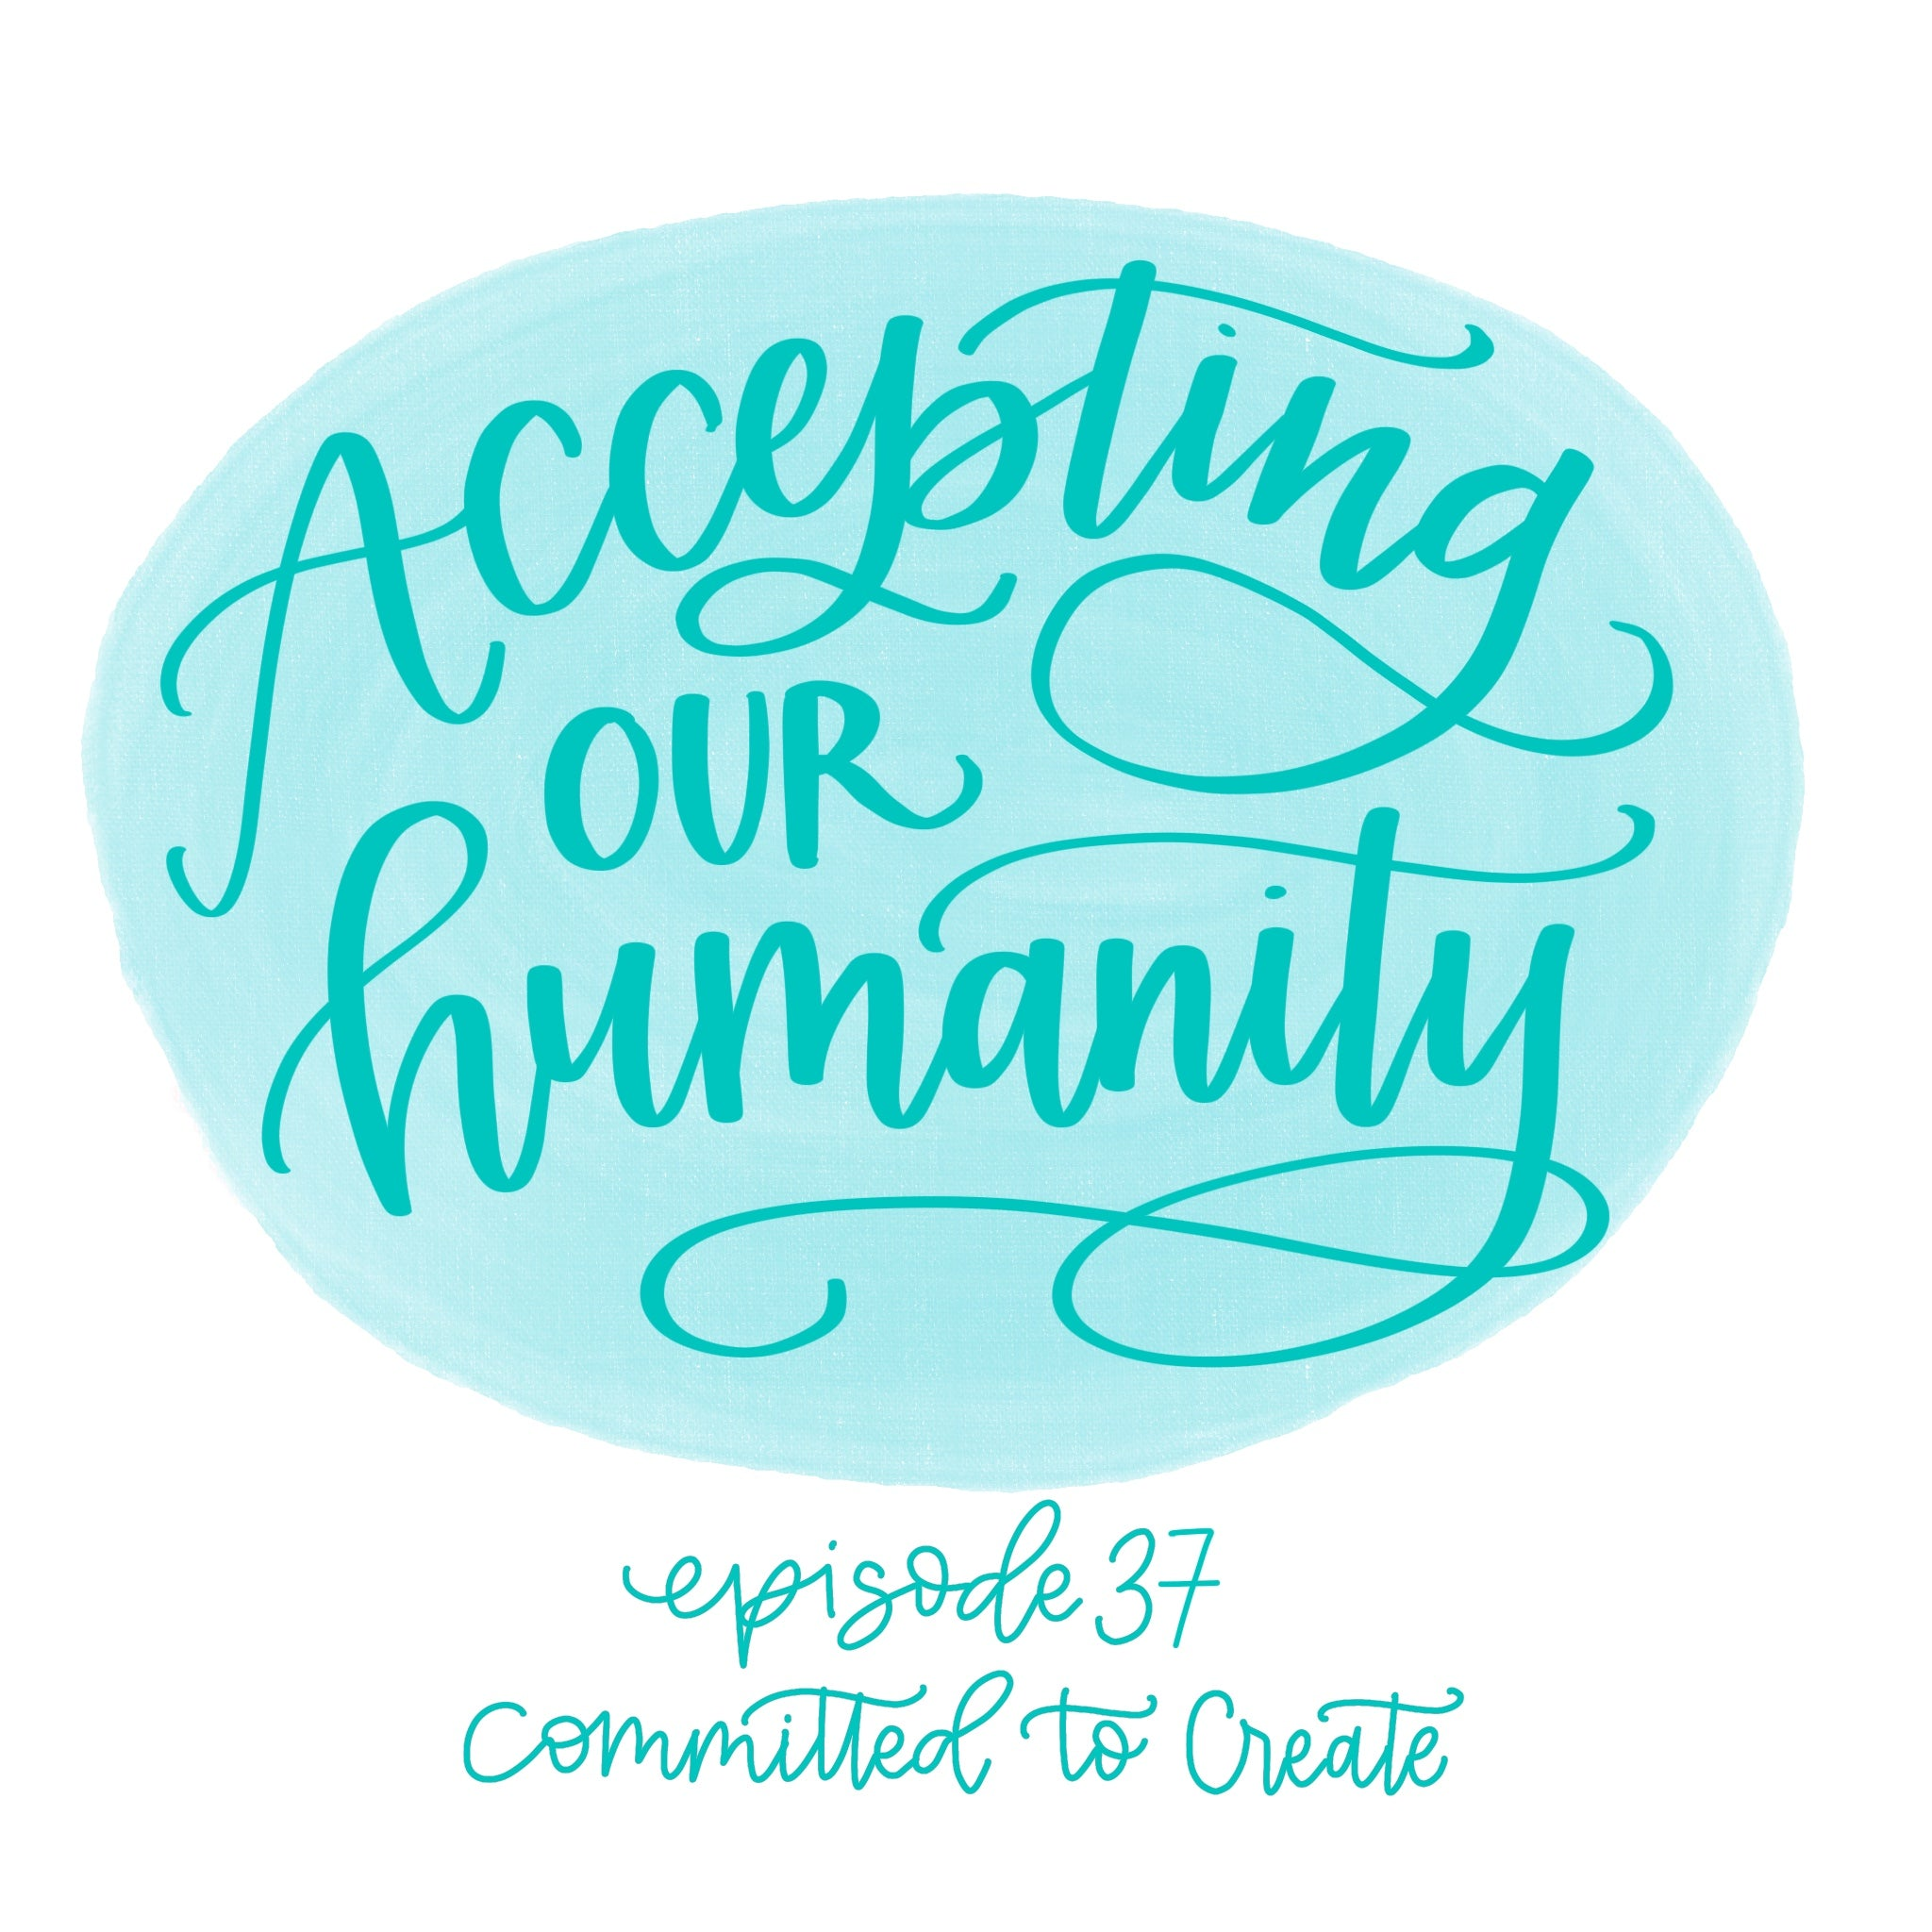 037: Accepting Our Humanity